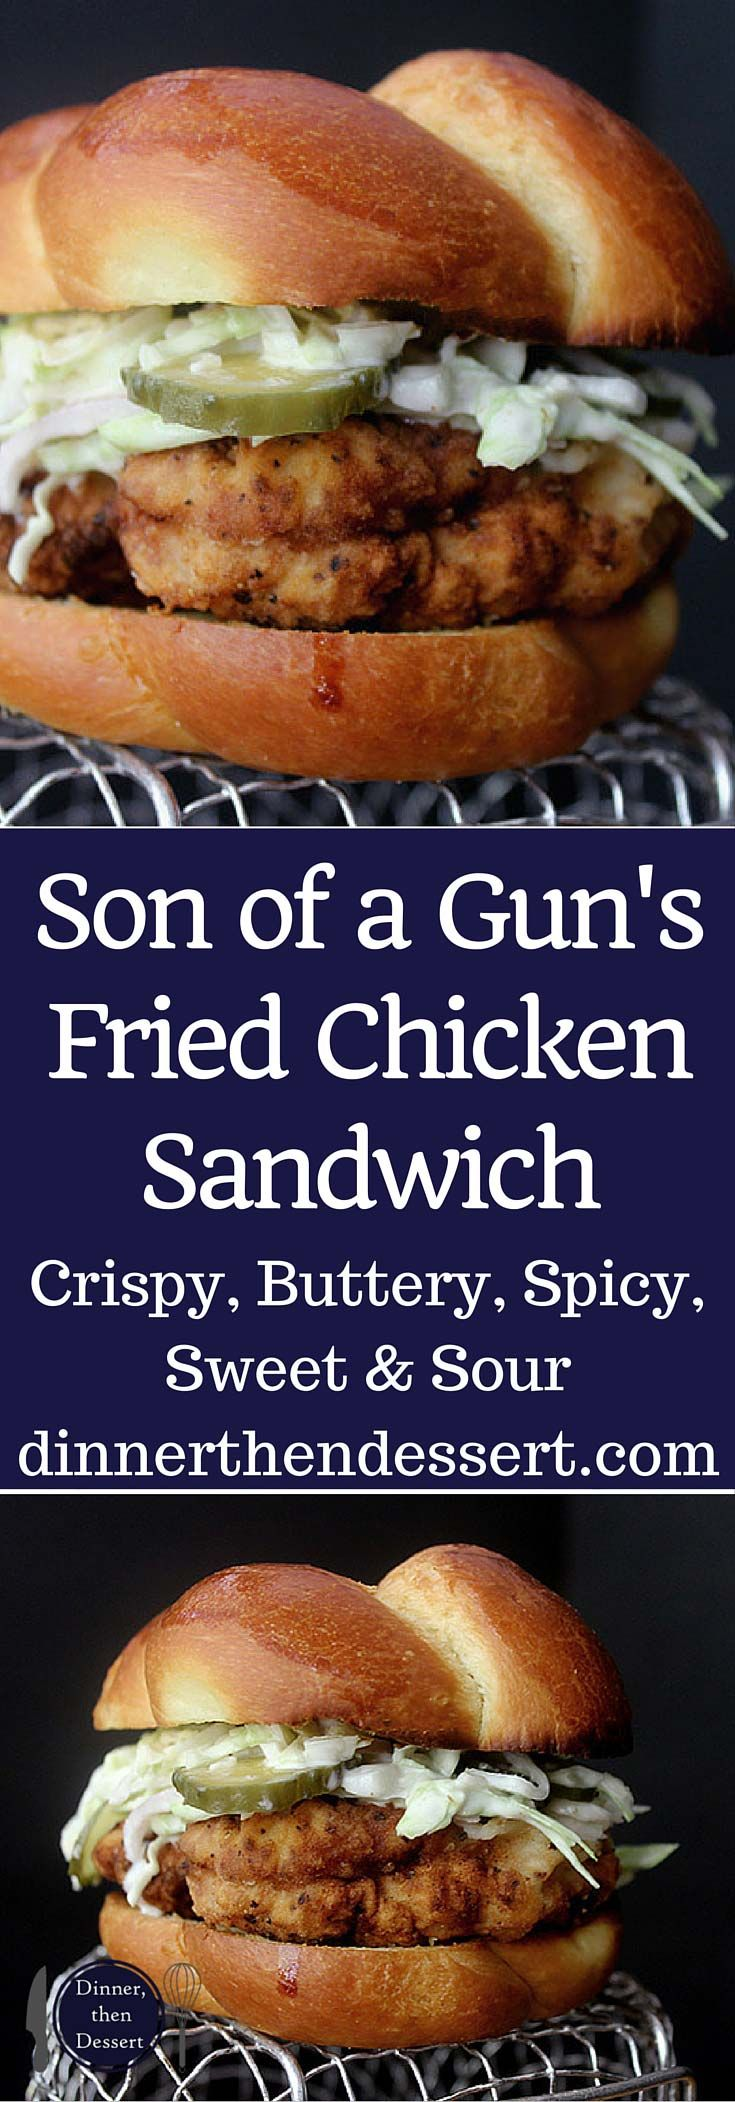 The Son of A Gun Fried Chicken Sandwich is crispy, juicy, spicy, sweet and sour in a buttery toasted bun without an impossible to get reservation.